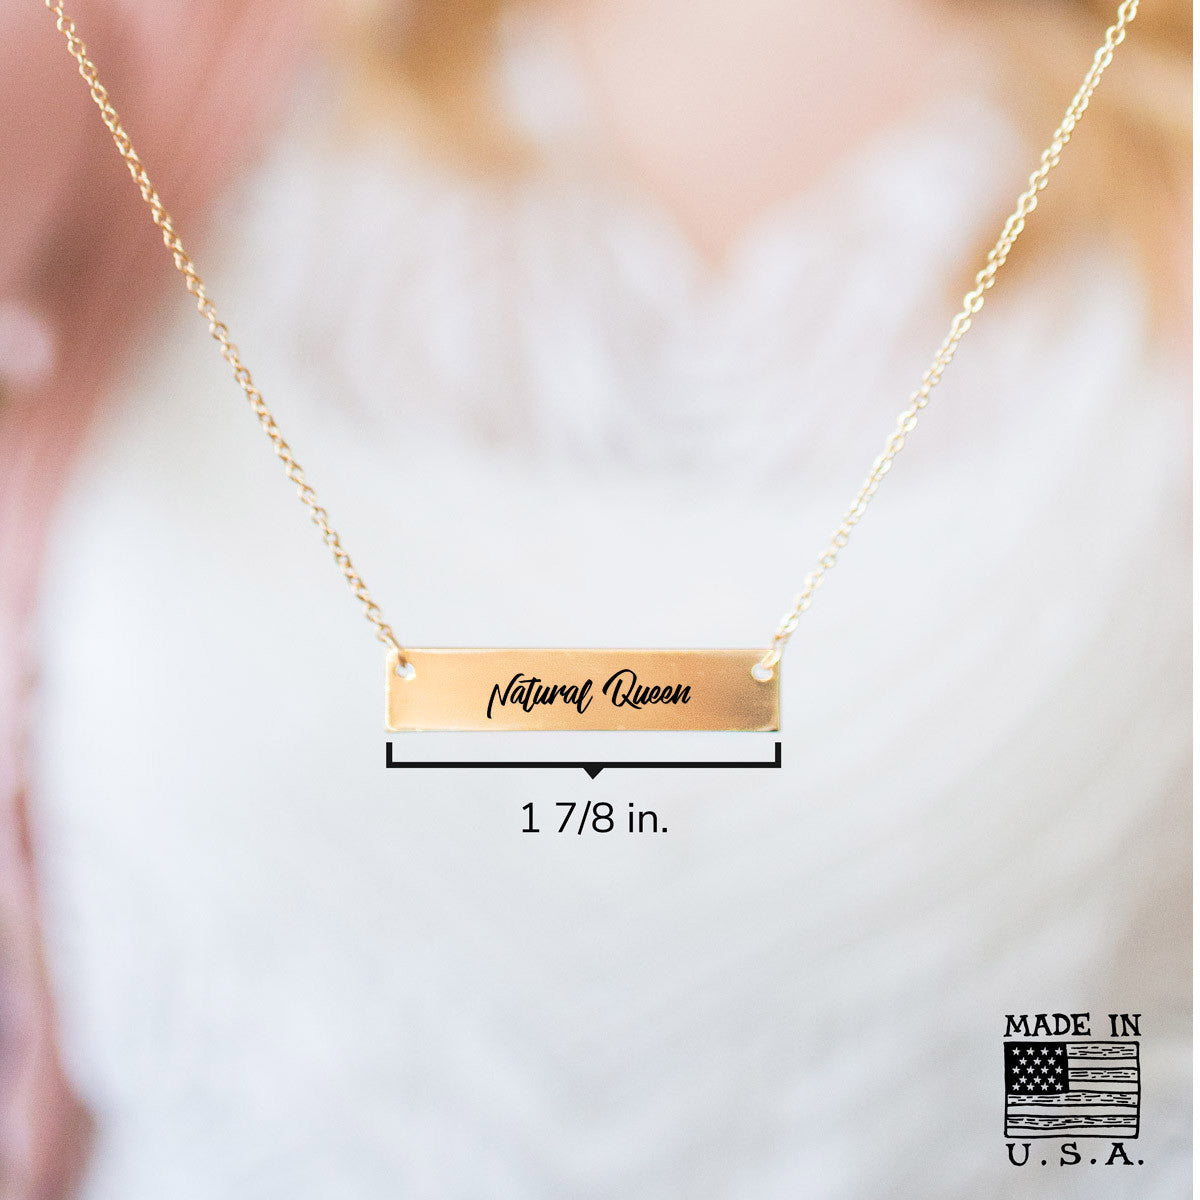 Natural Queen Gold / Silver Bar Necklace